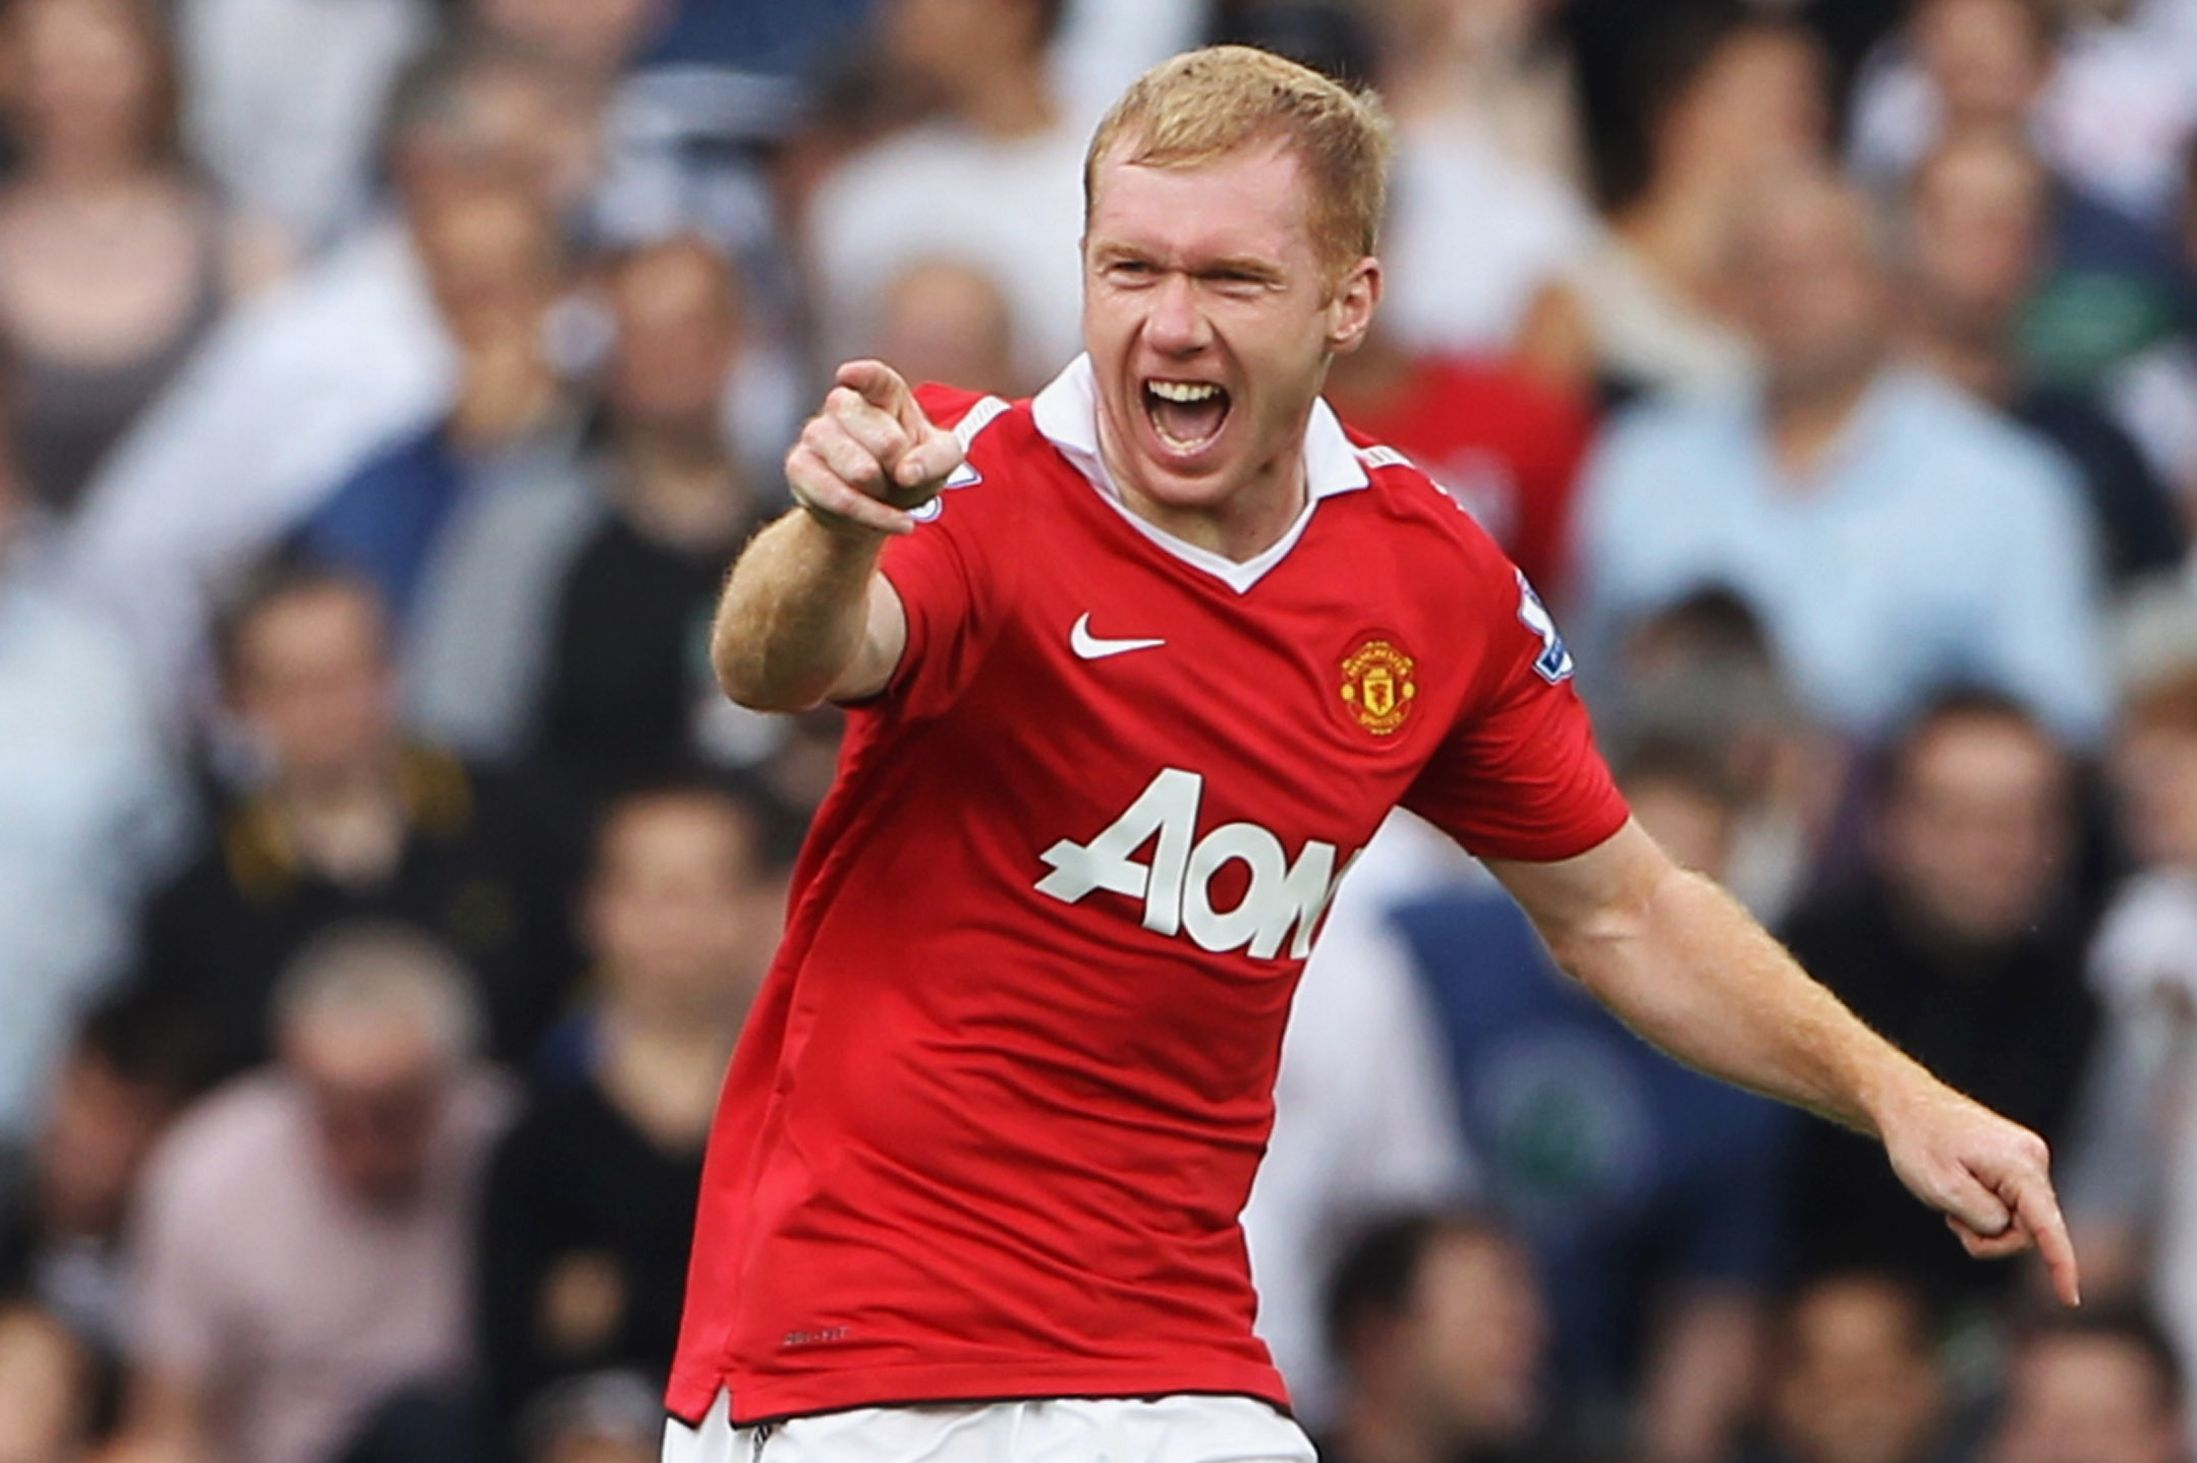 Paul Scholes: Paul Scholes Coming Out Of Retirement?